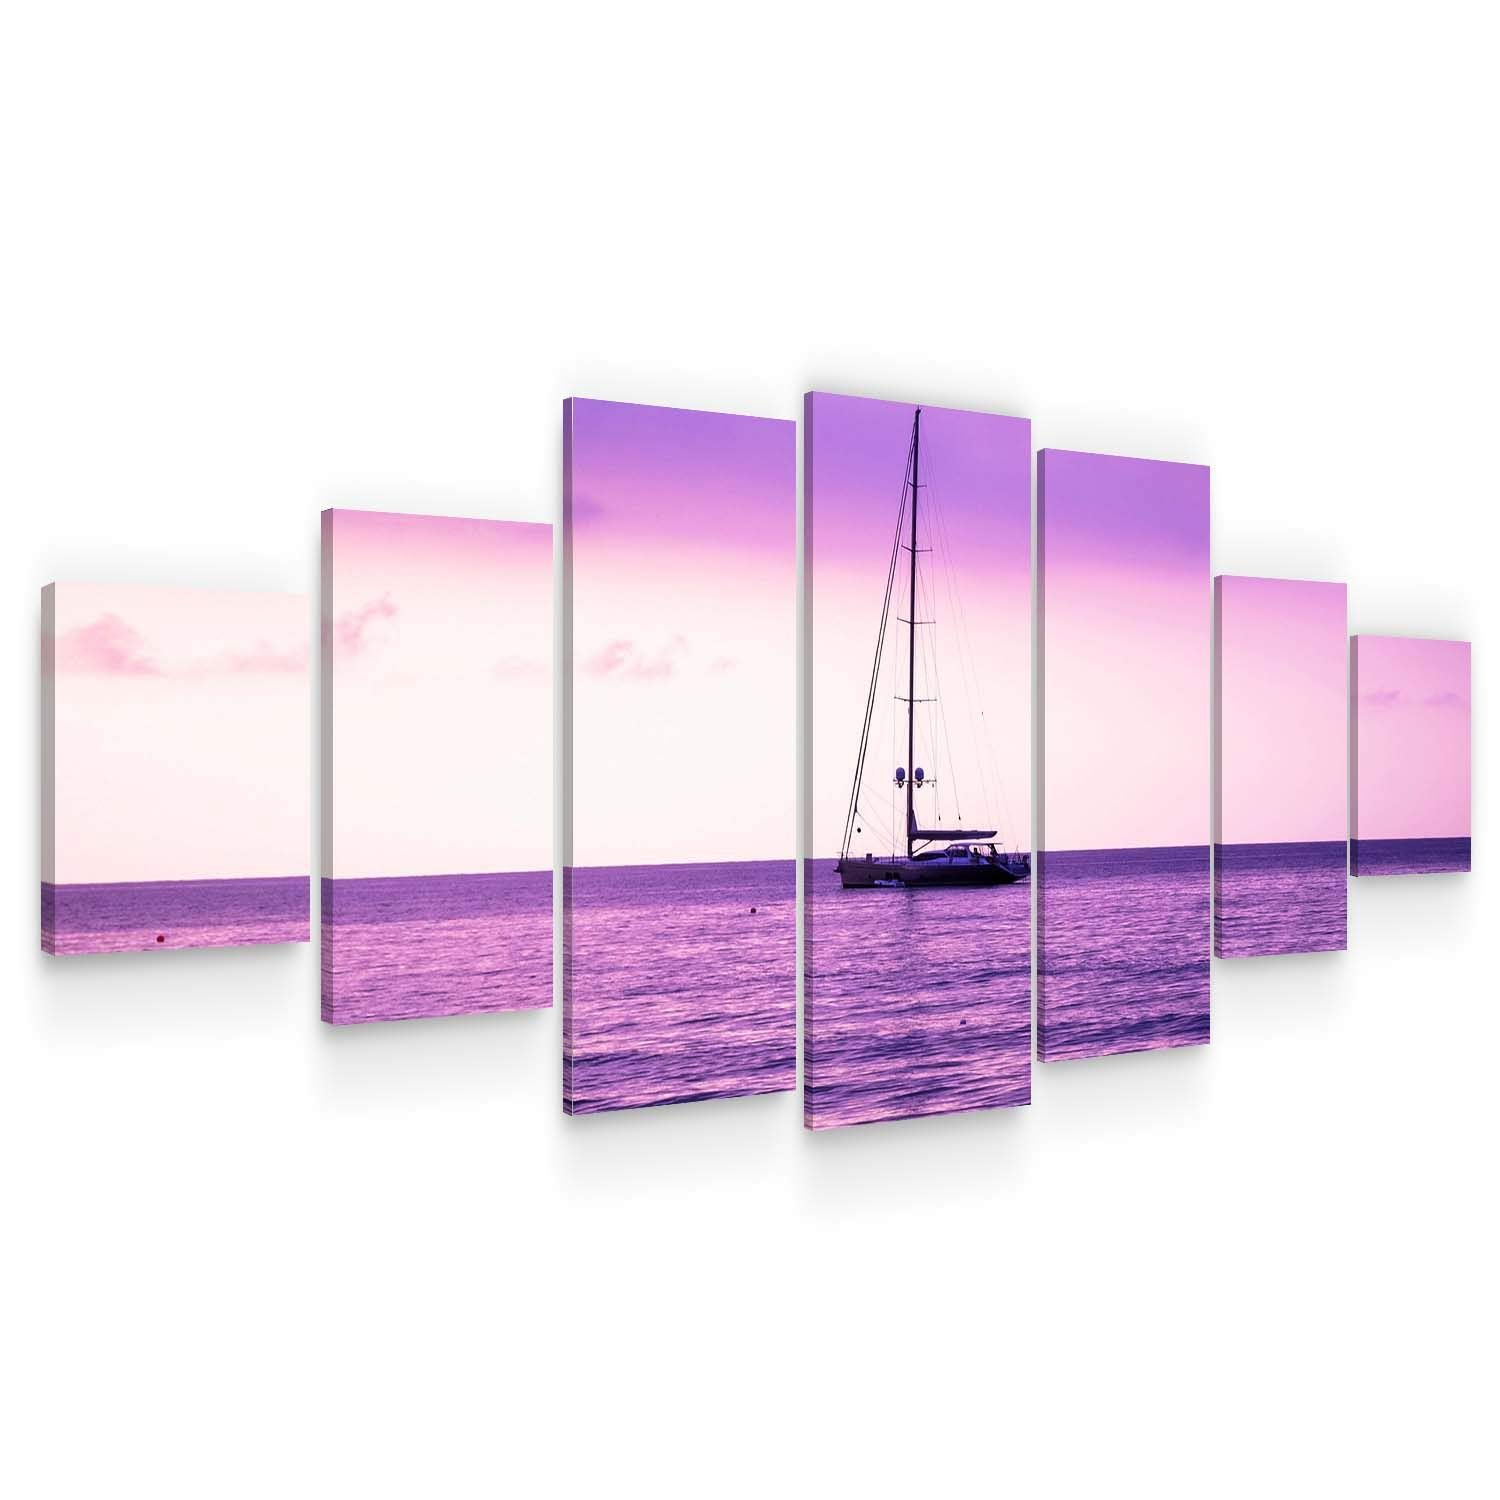 Startonight Huge Canvas Wall Art Purple Ocean View - Large Framed Set of 7 40 x 95 Inches